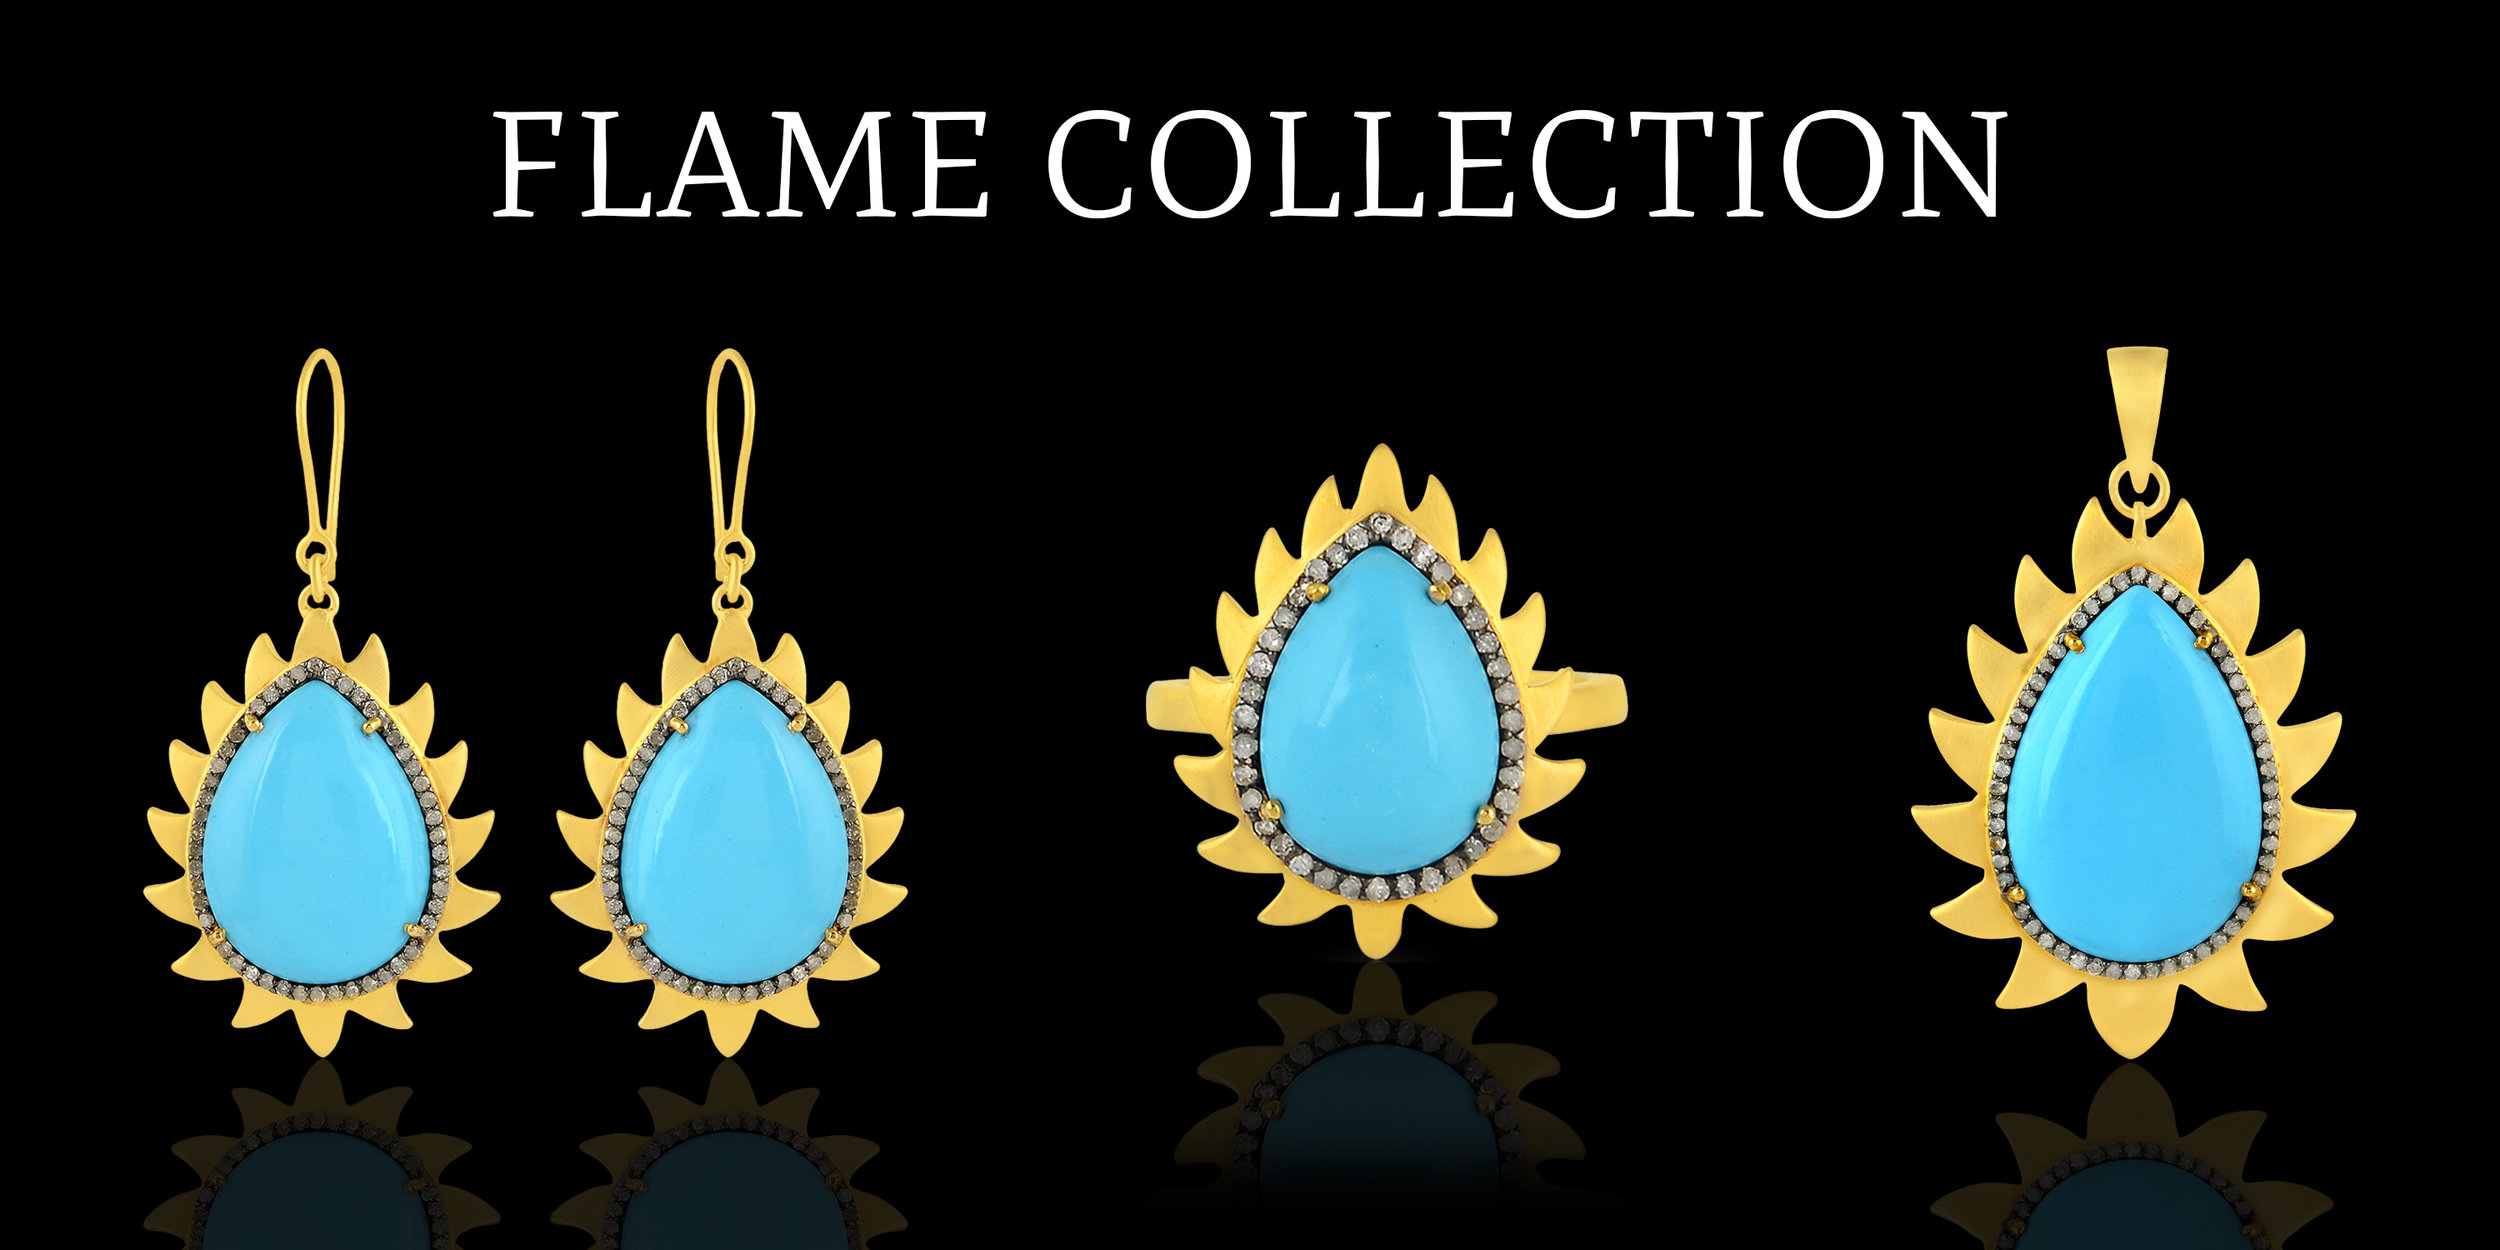 Flame Collection Banner-1.jpg